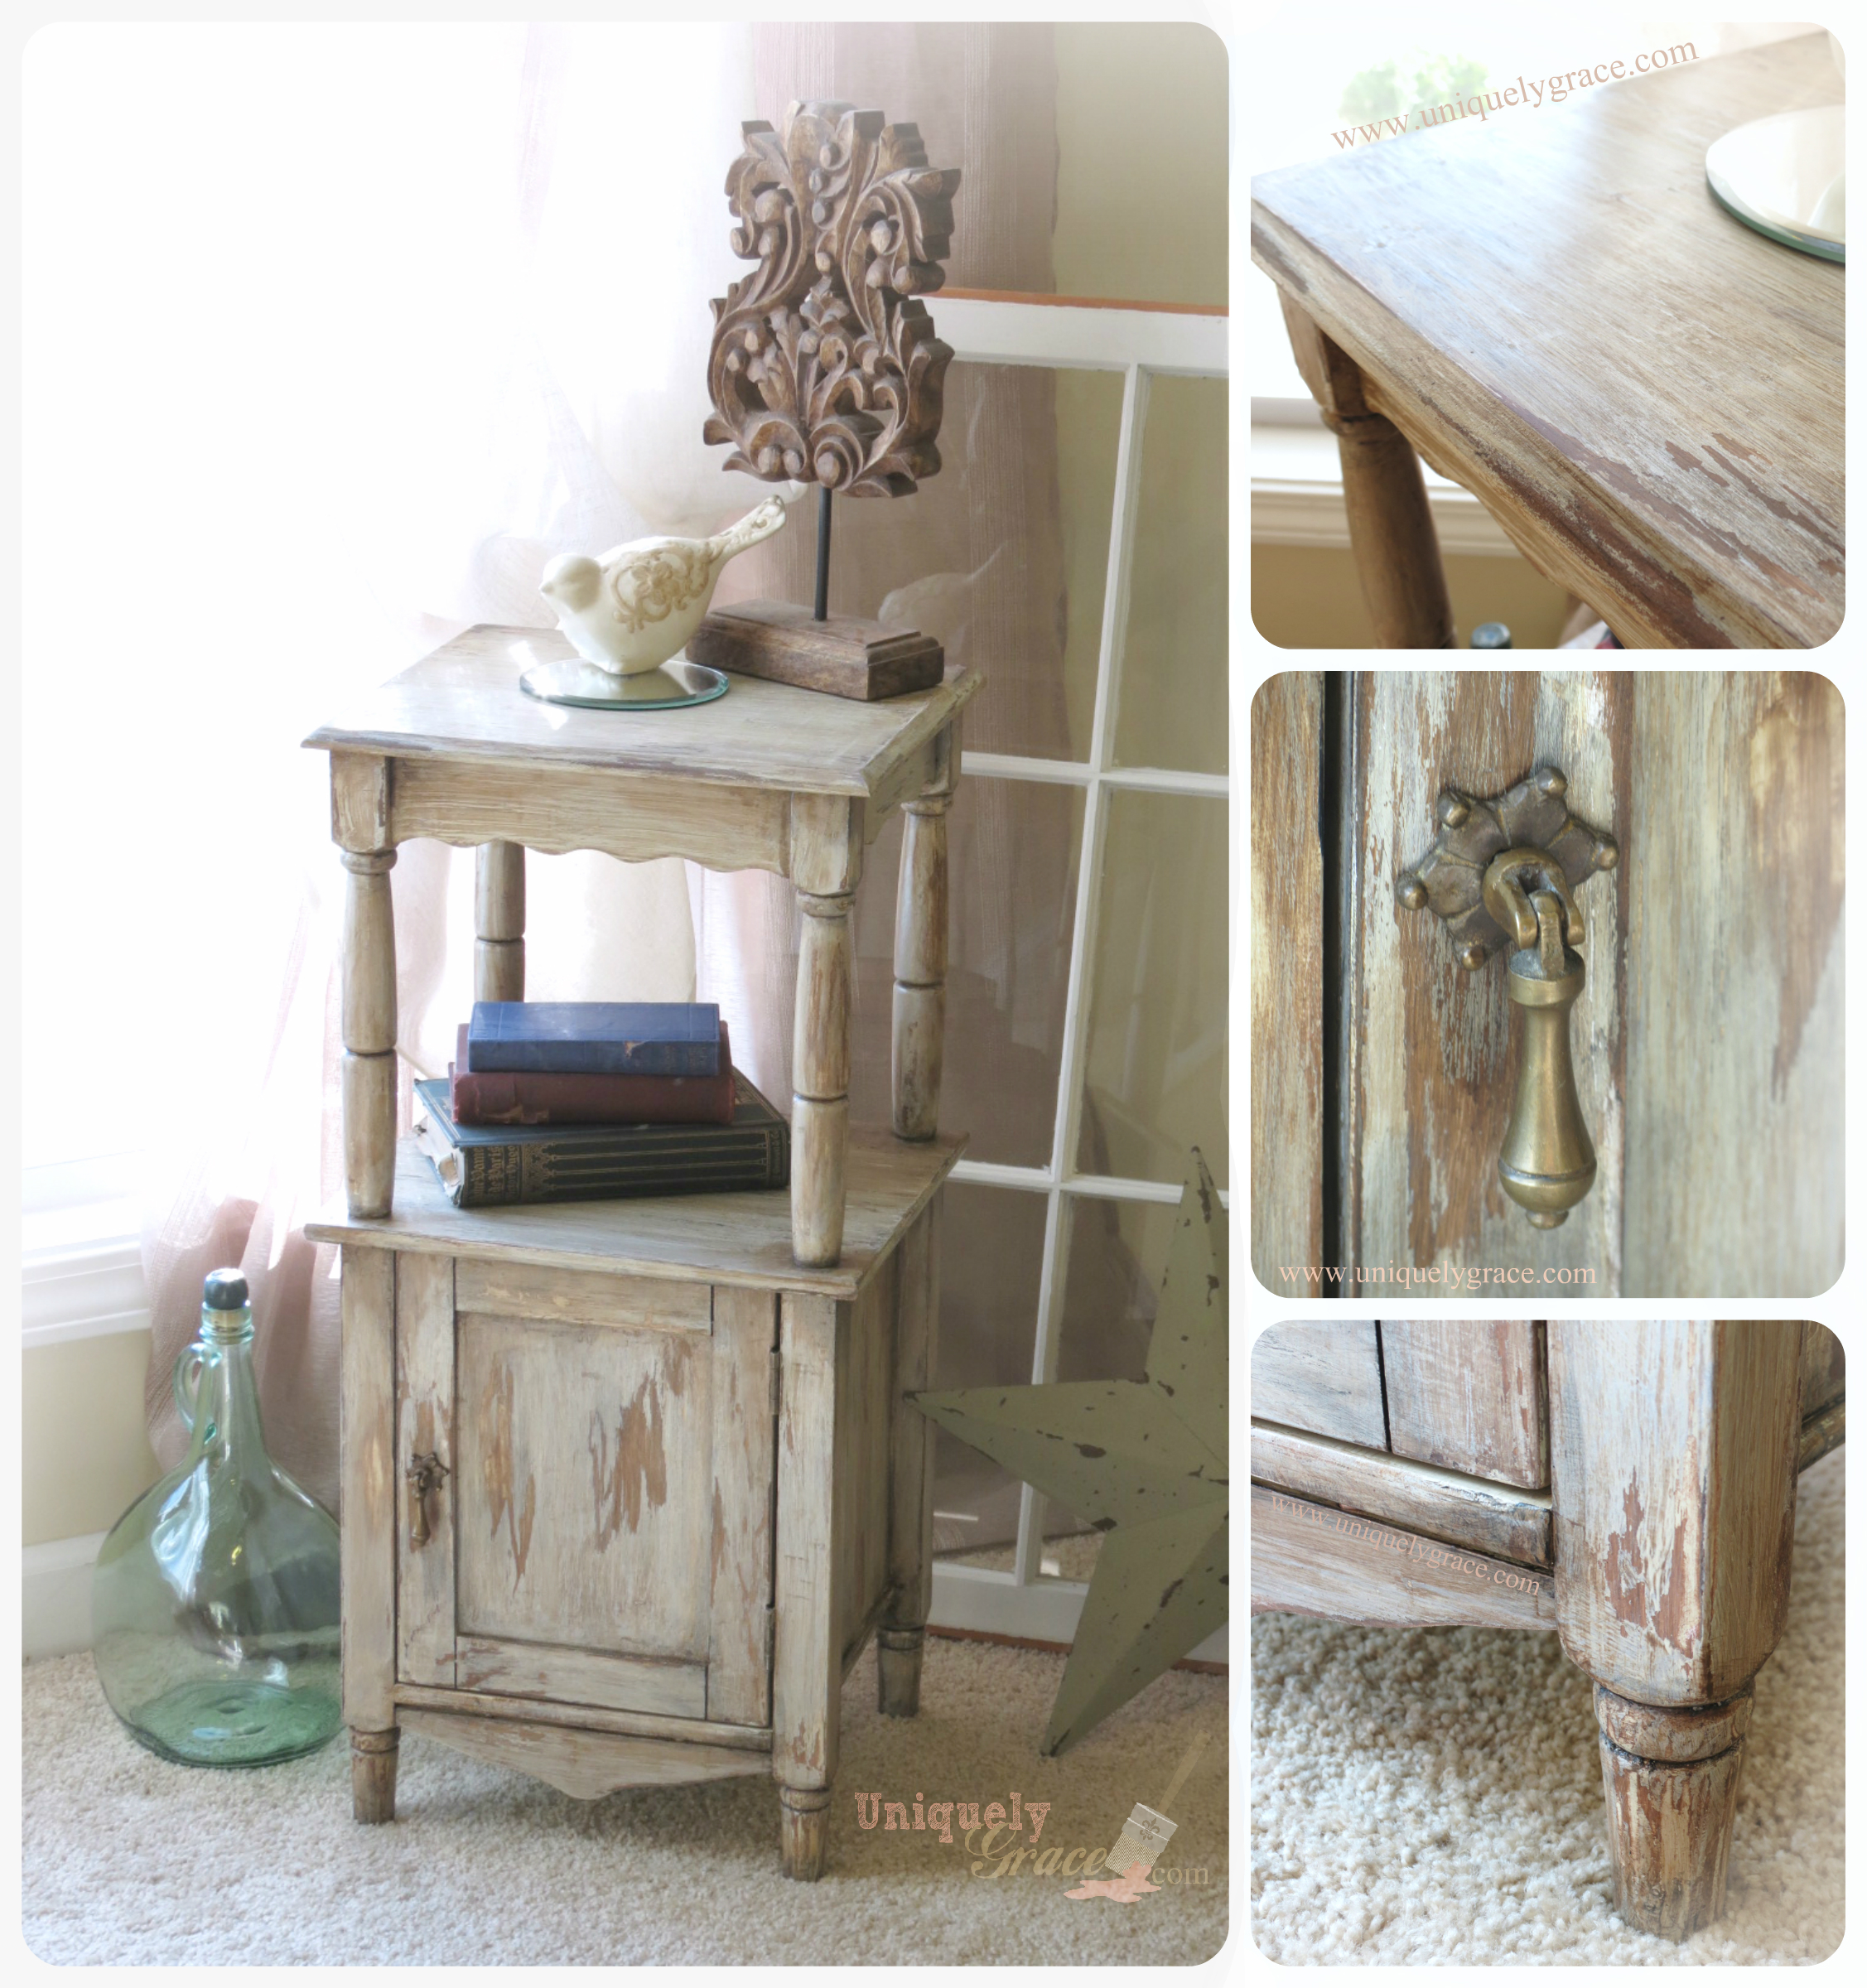 Shabby Chic paints shimmer chalk acrylic chippy distressed laminate pressed wood uniquely grace end table night stand cabinet